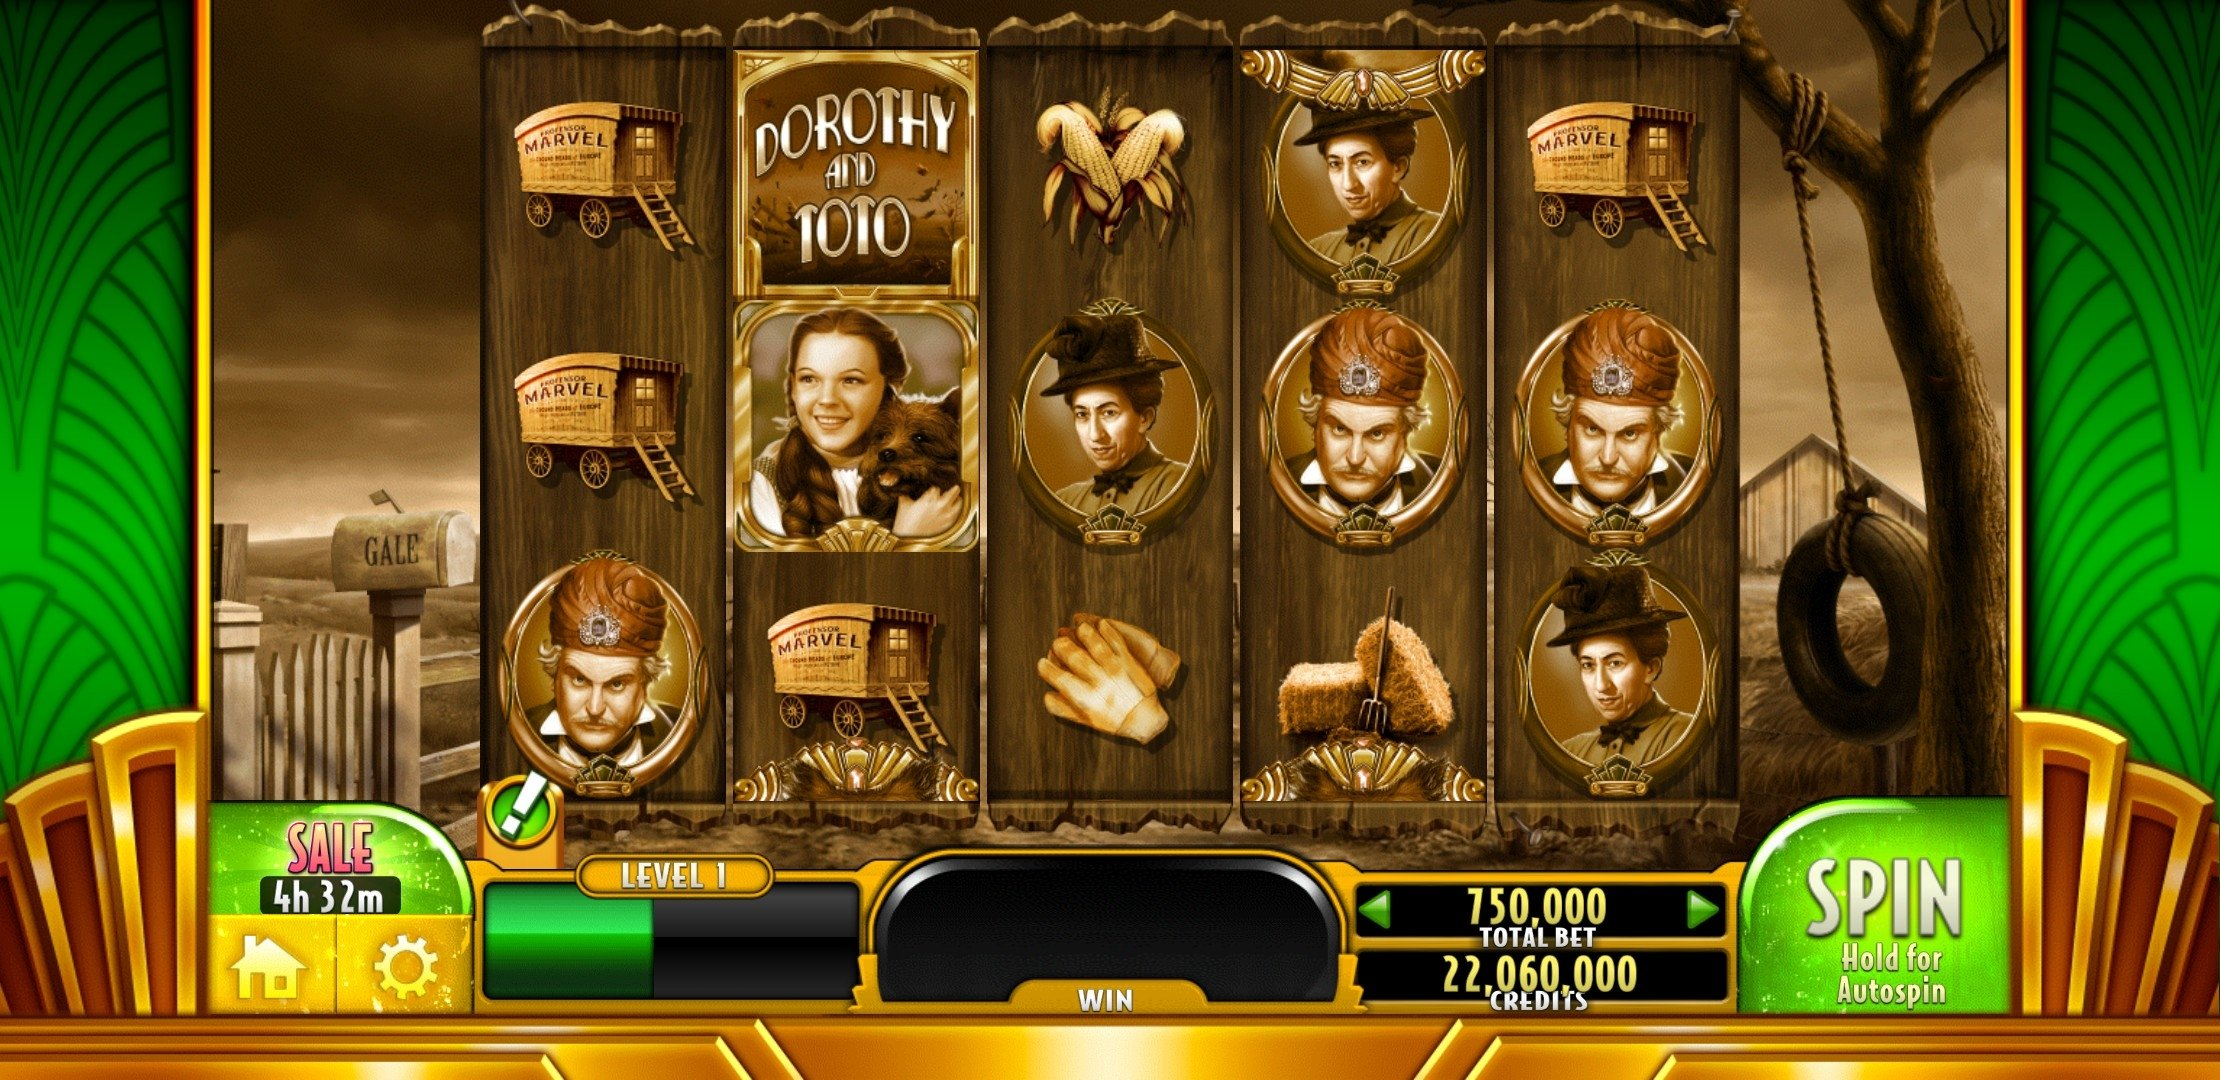 Wizard of Oz Slots Android image 6